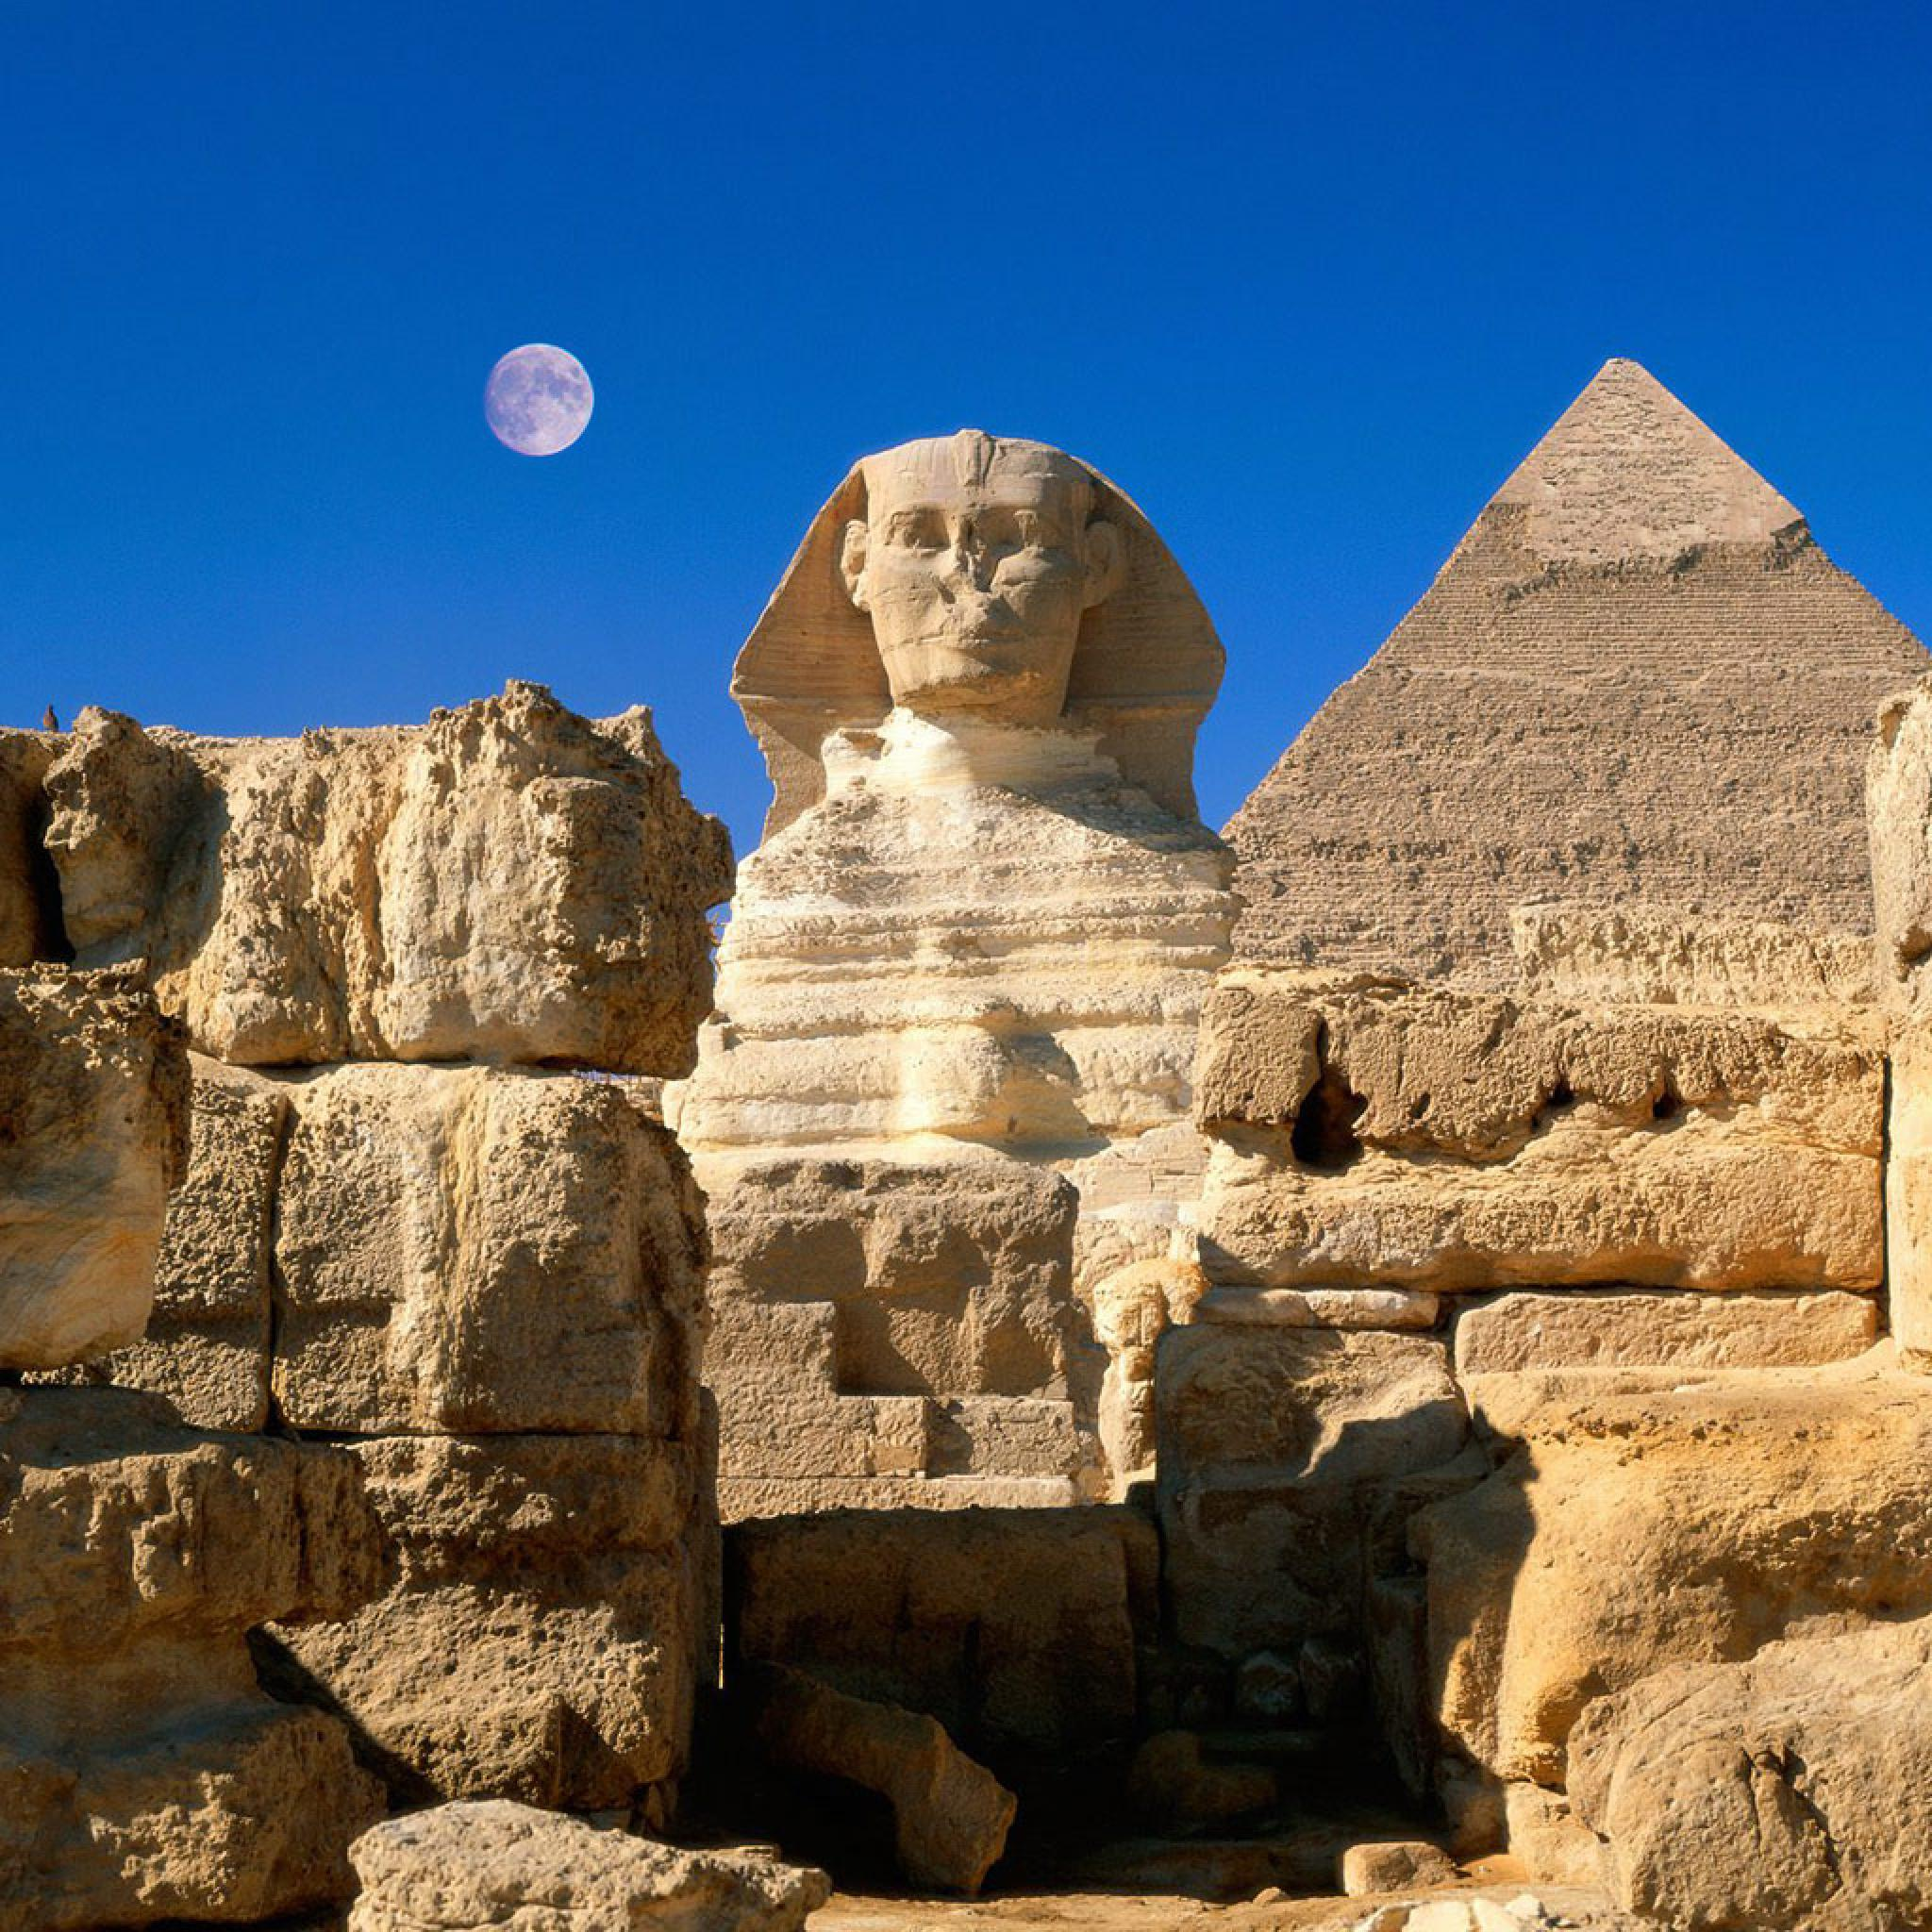 The_Great_Sphinx_Of_Giza_Egypt